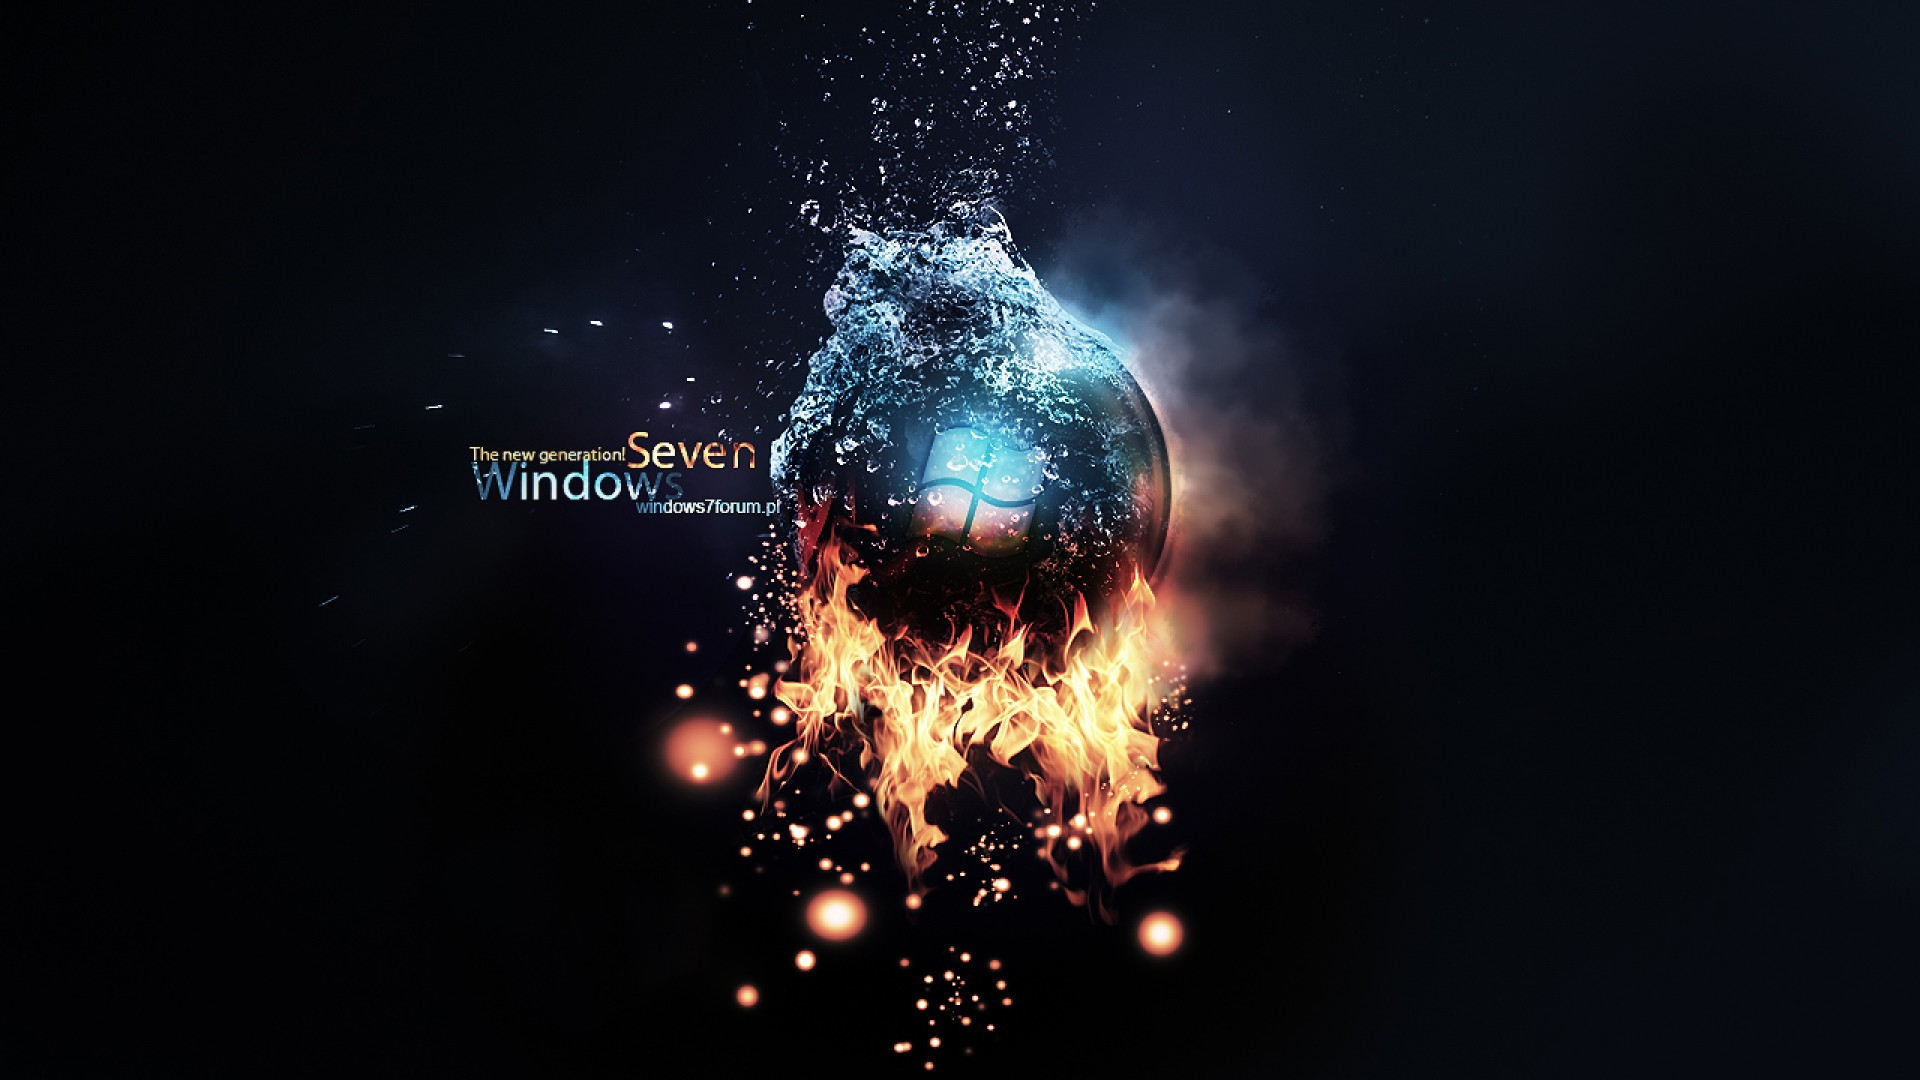 windows 7 ultimate hd wallpaper - celeb wallpapers | wallpapers of